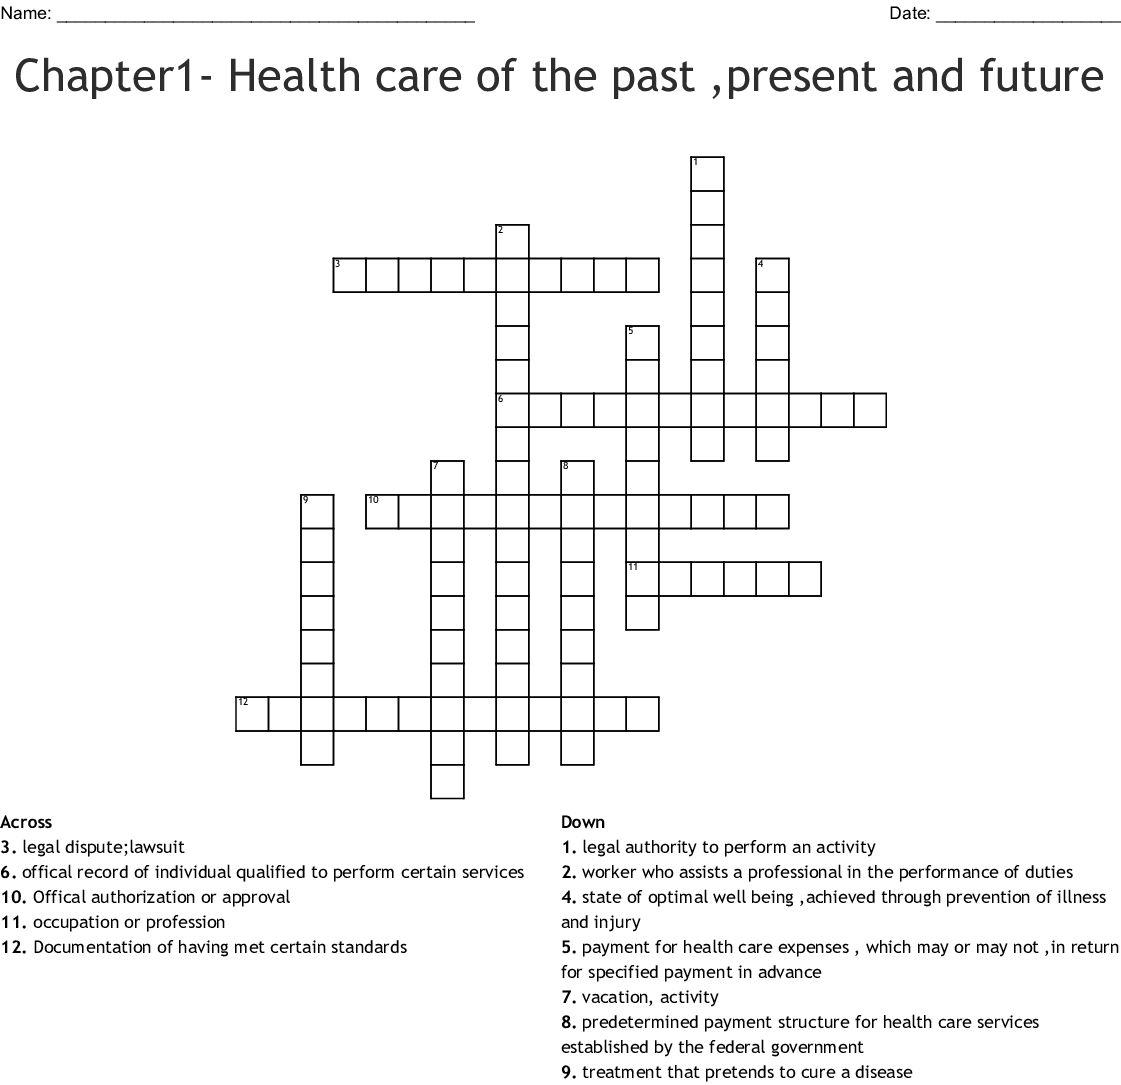 Chapter1 Health Care Of The Past Present And Future Crossword Wordmint